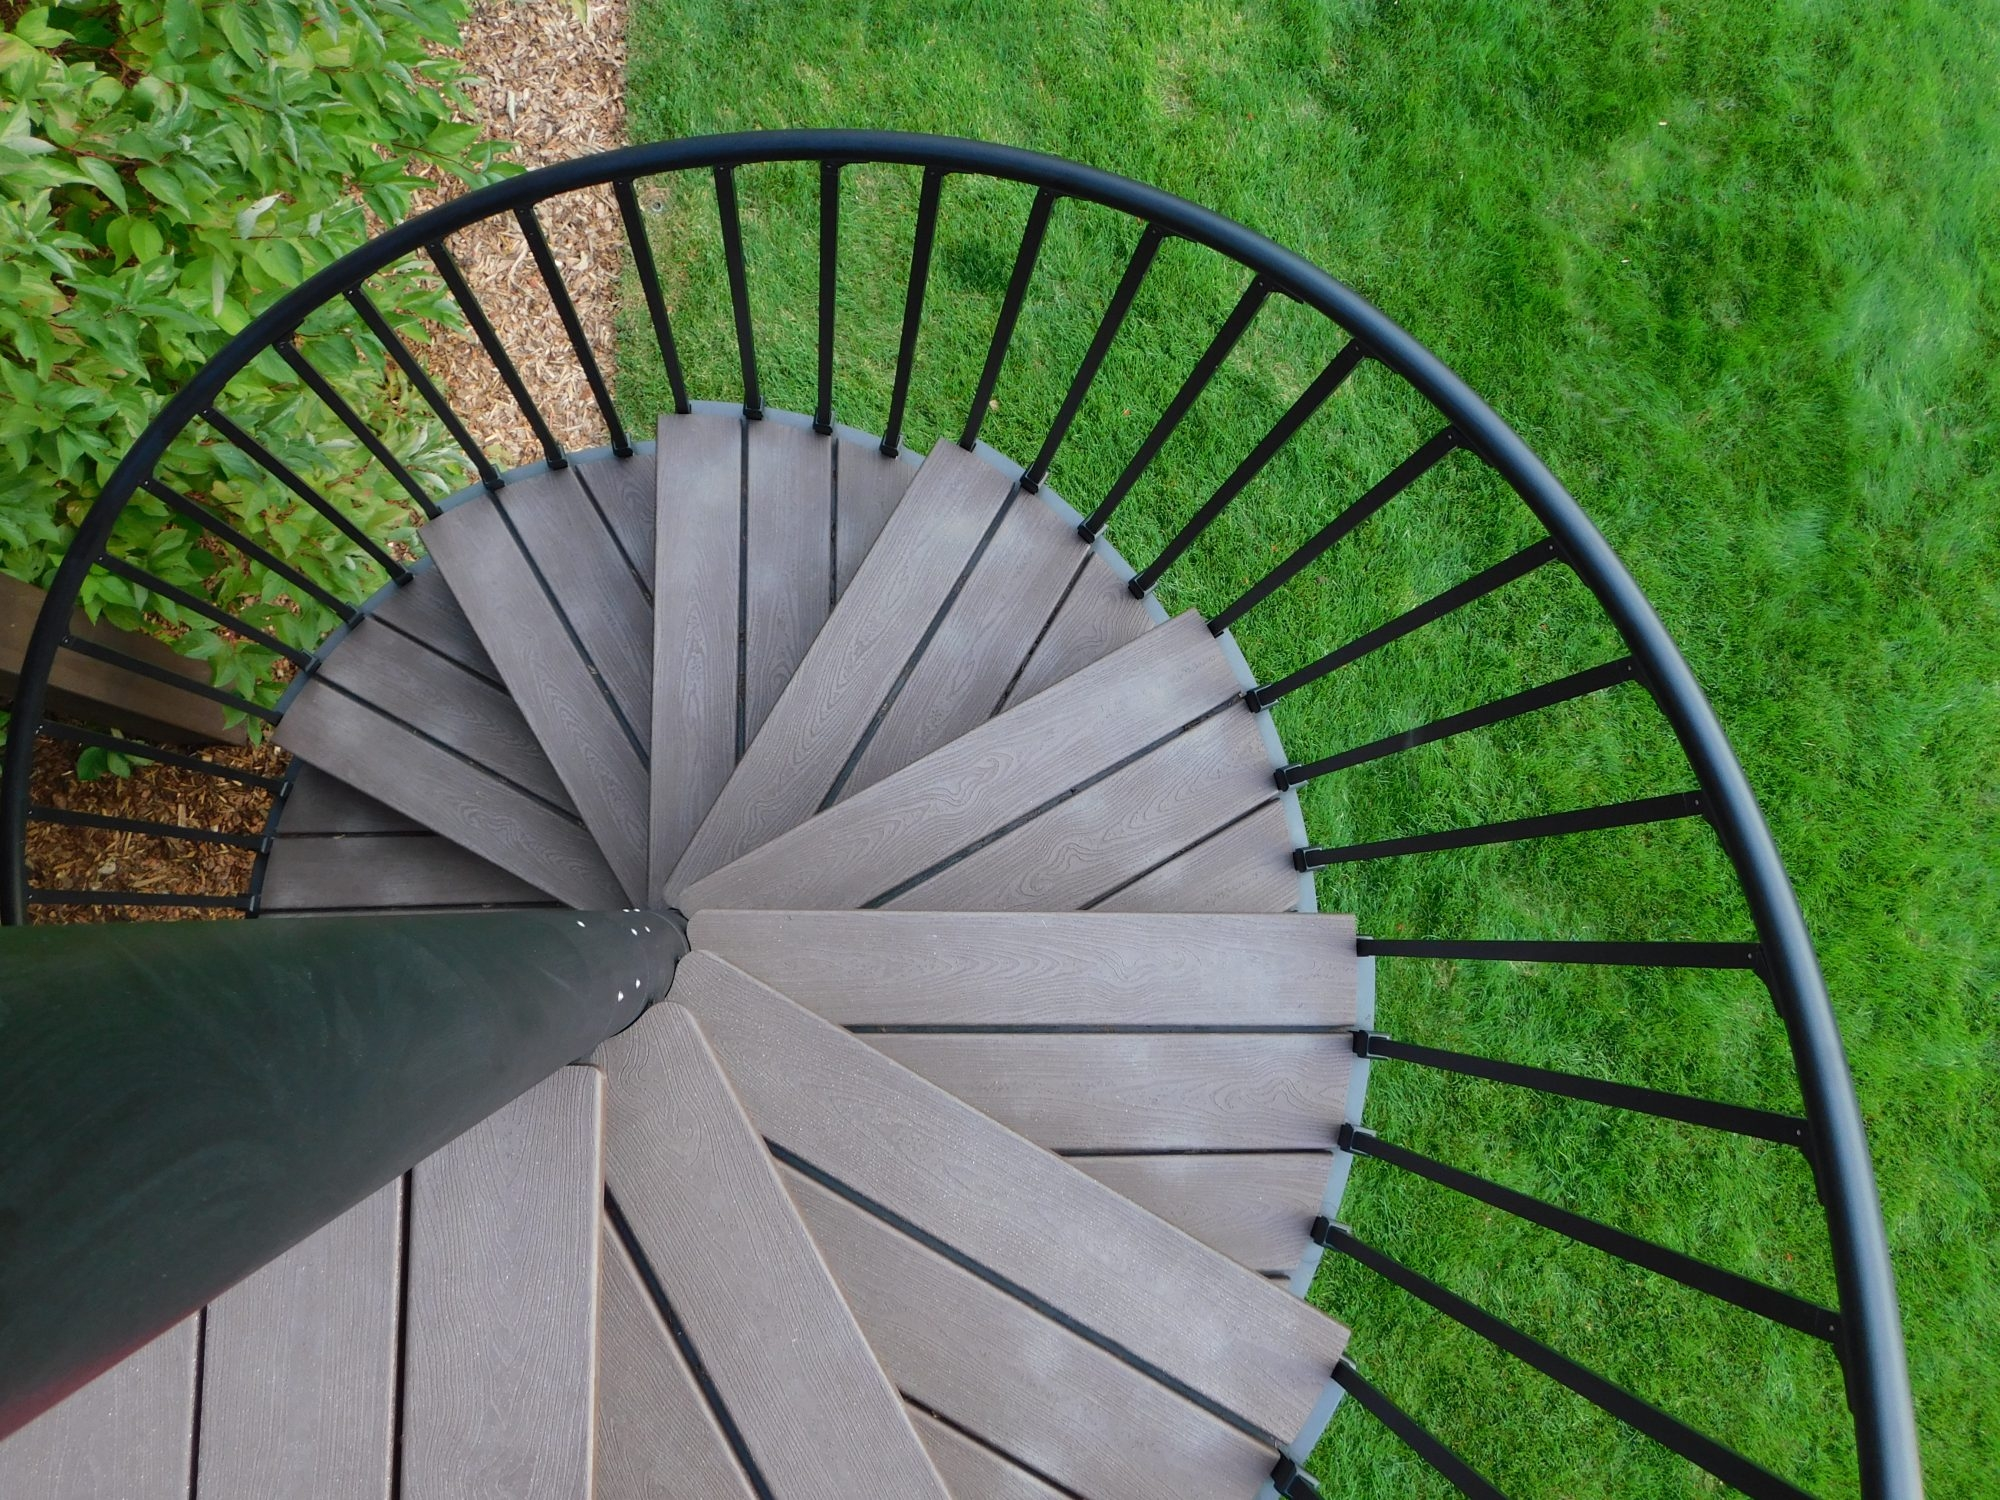 High Performance Trex Spiral Stairs   Trex Spiral Stairs Cost   Stair Treads   Composite   Stair Case   Steel   Handrail